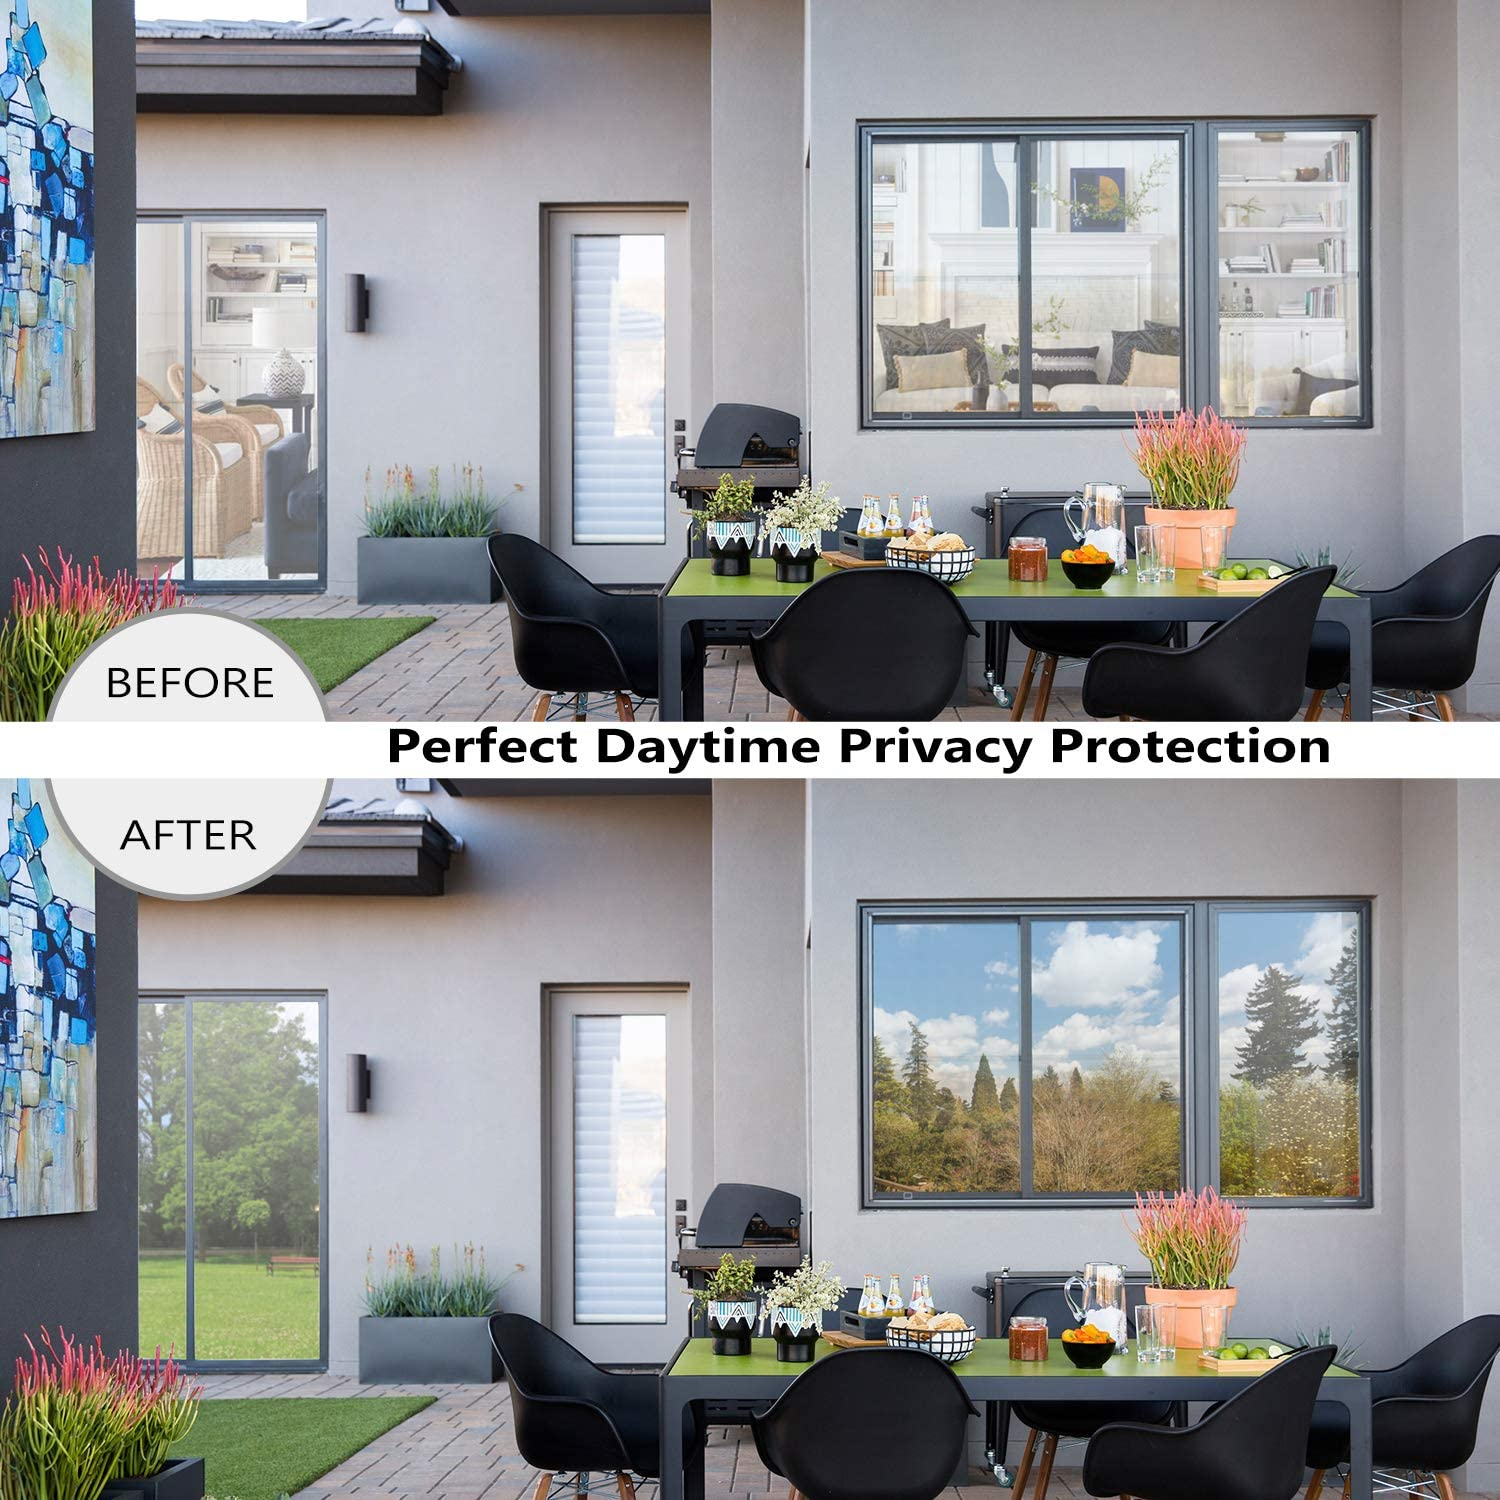 One Way Daytime Privacy Window Tint Self Adhesive Solar Film Anti UV Heat Rejection Green-Silver Mirror Window Film for Home 5